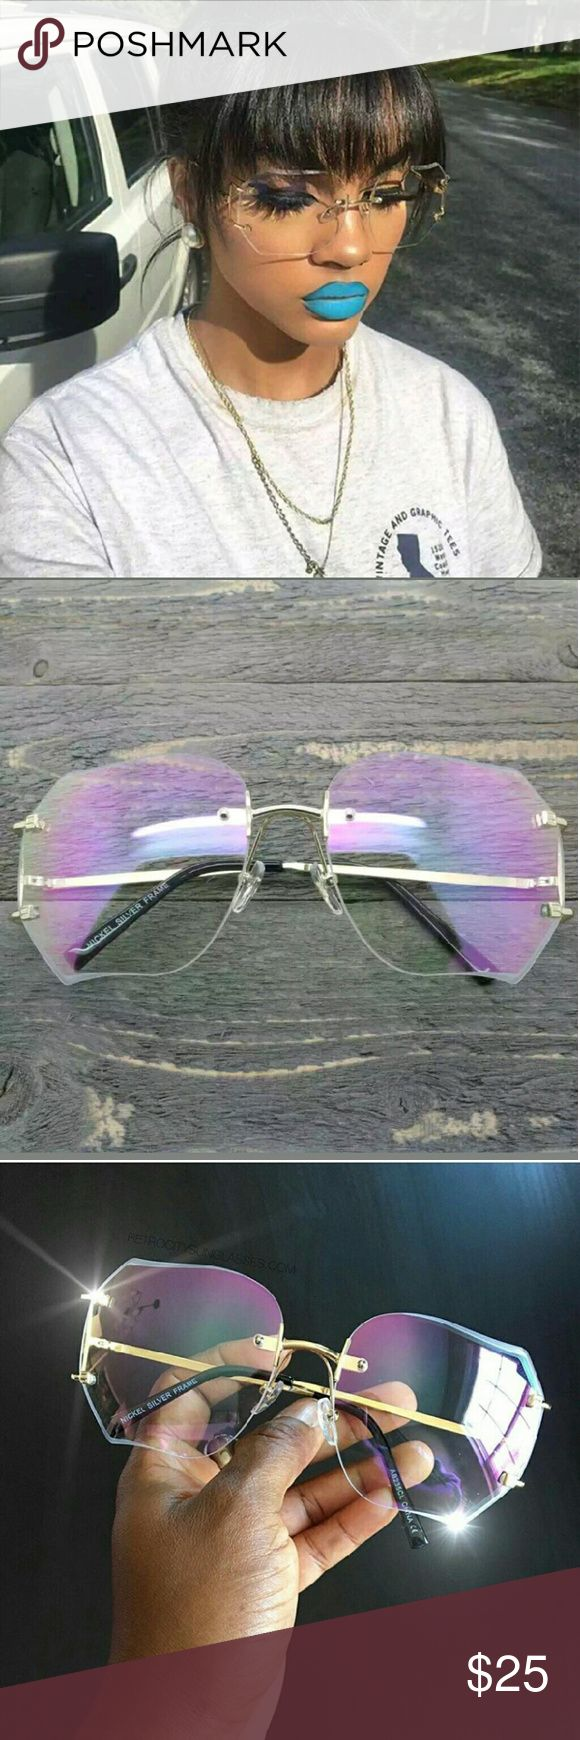 Vintage oversized glasses Vintage clear oversized glasses no brand Accessories Glasses